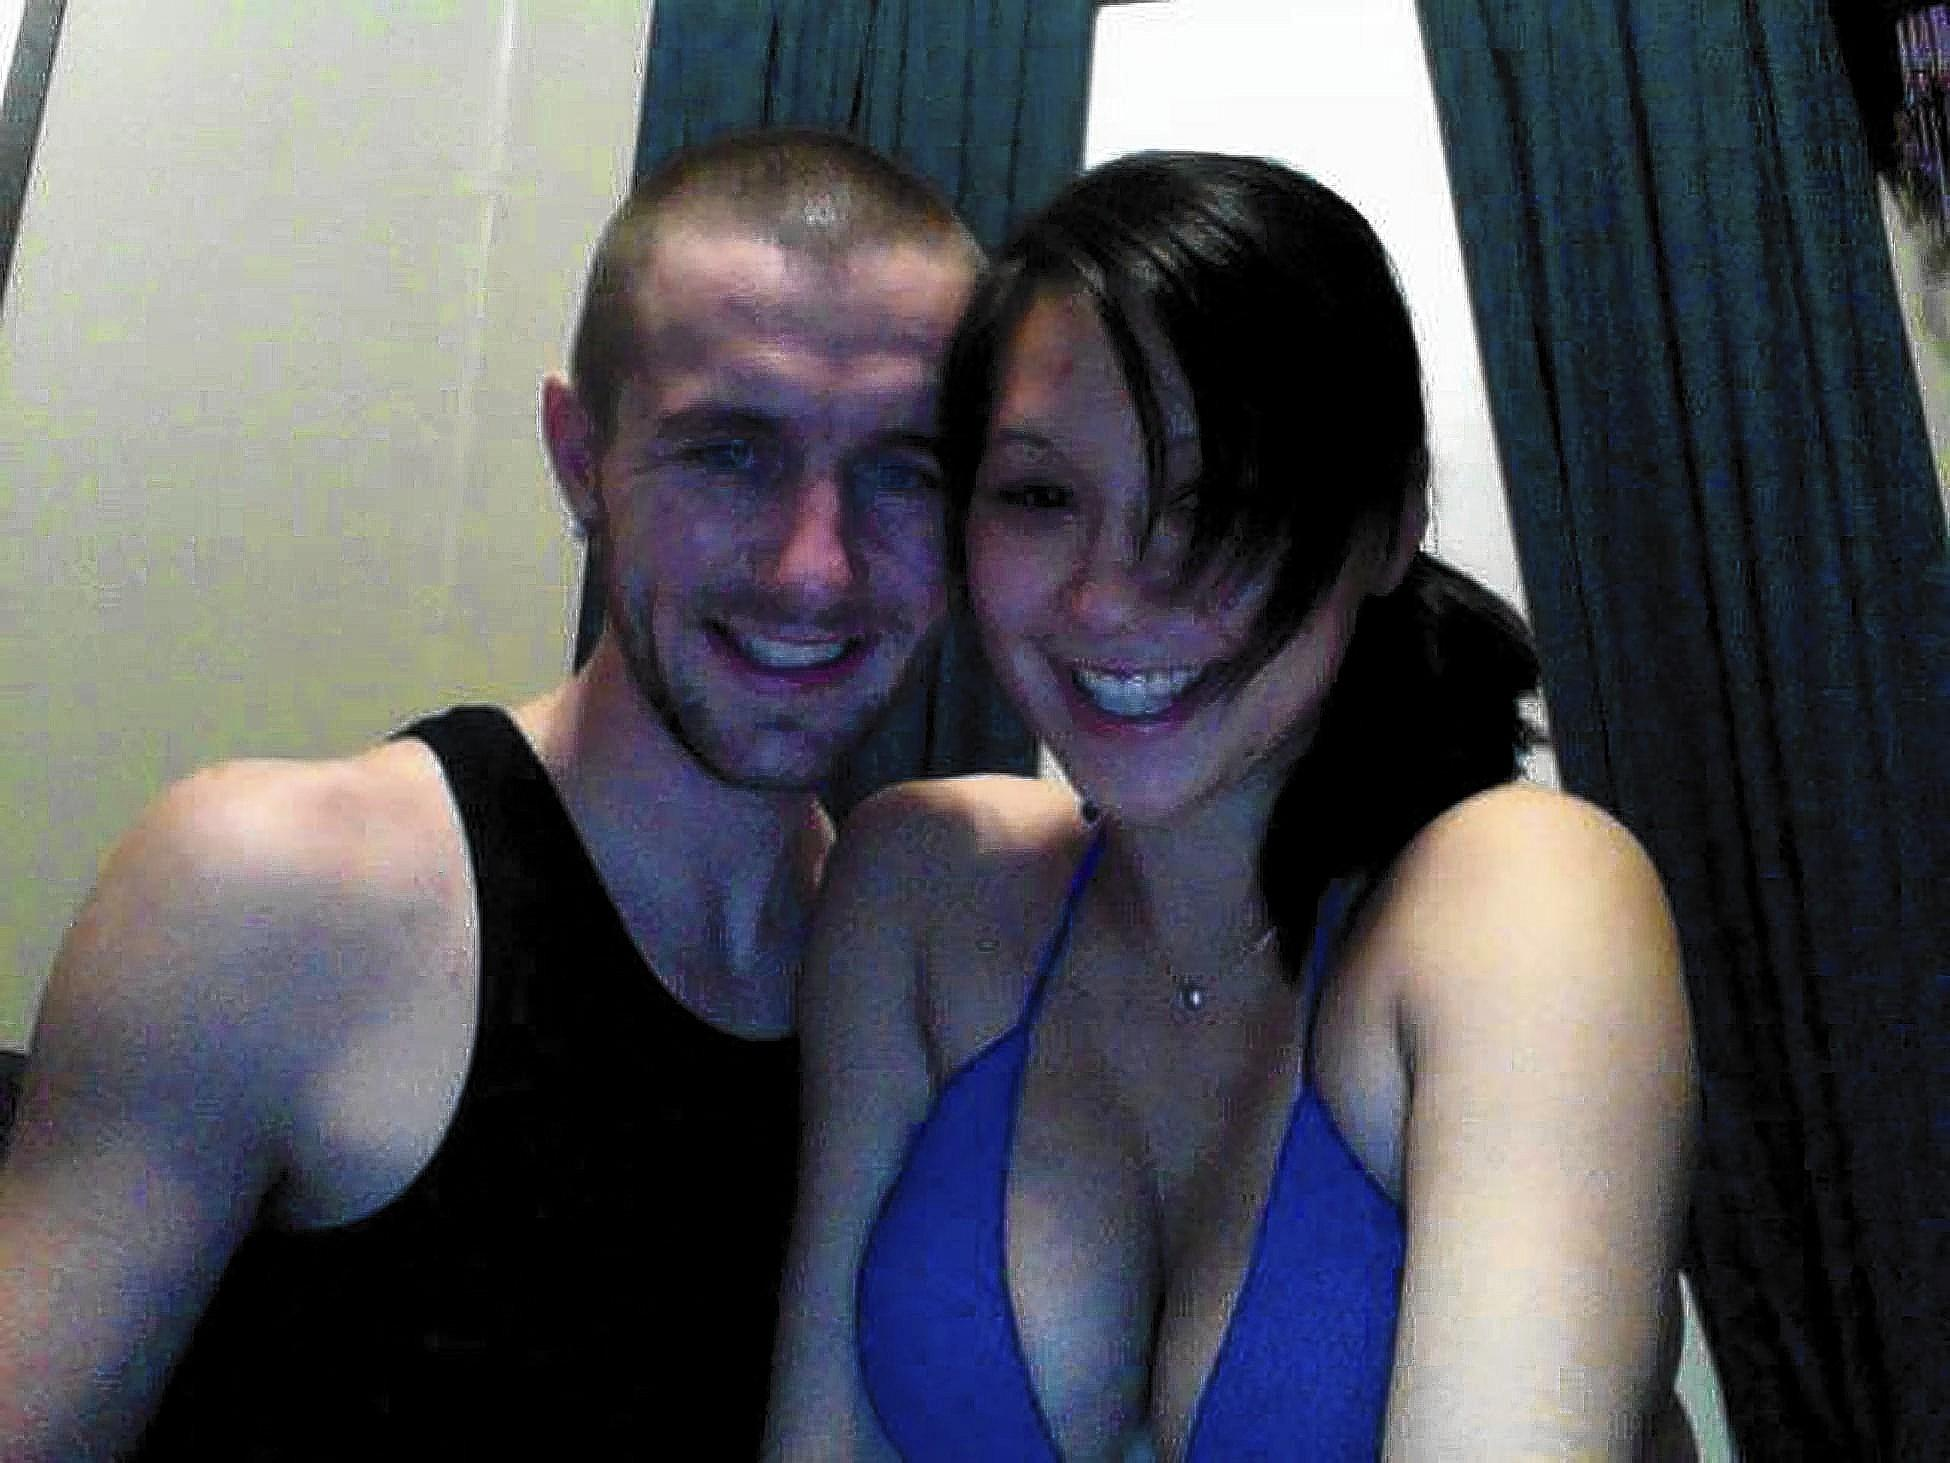 Shayna Sykes (right) of Macungie, with fiancee Blake Bills, got a prison sentence last September because of a wild police chase that ended with a crash in Philadelphia.